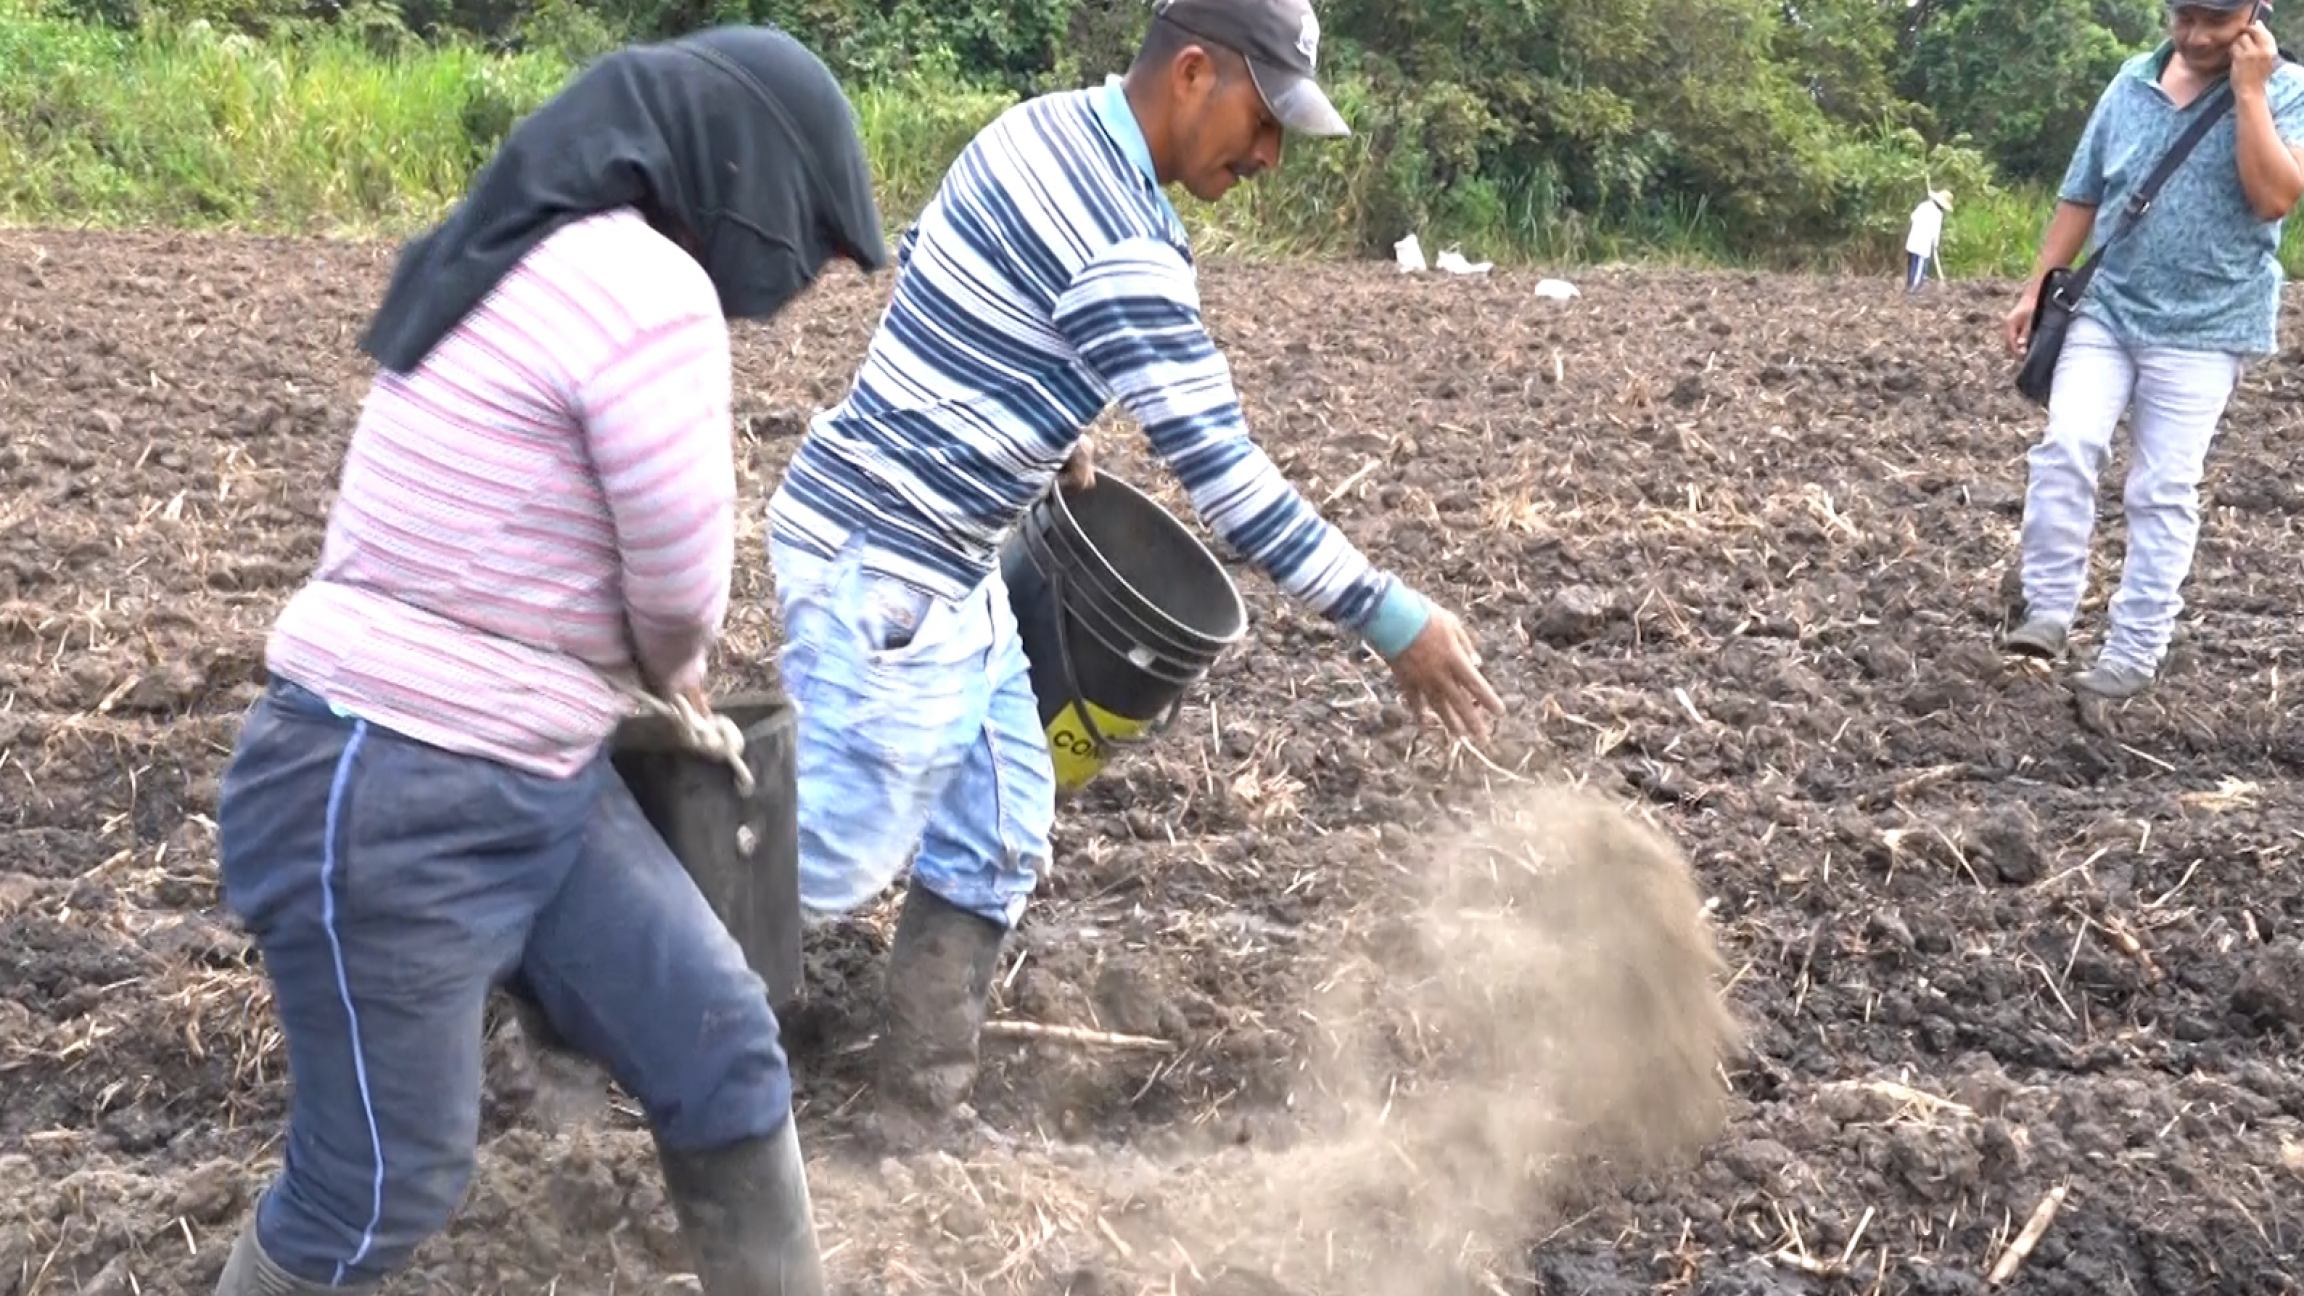 Two people toss fertilizer on the soil as one man takes a call on his mobile phone